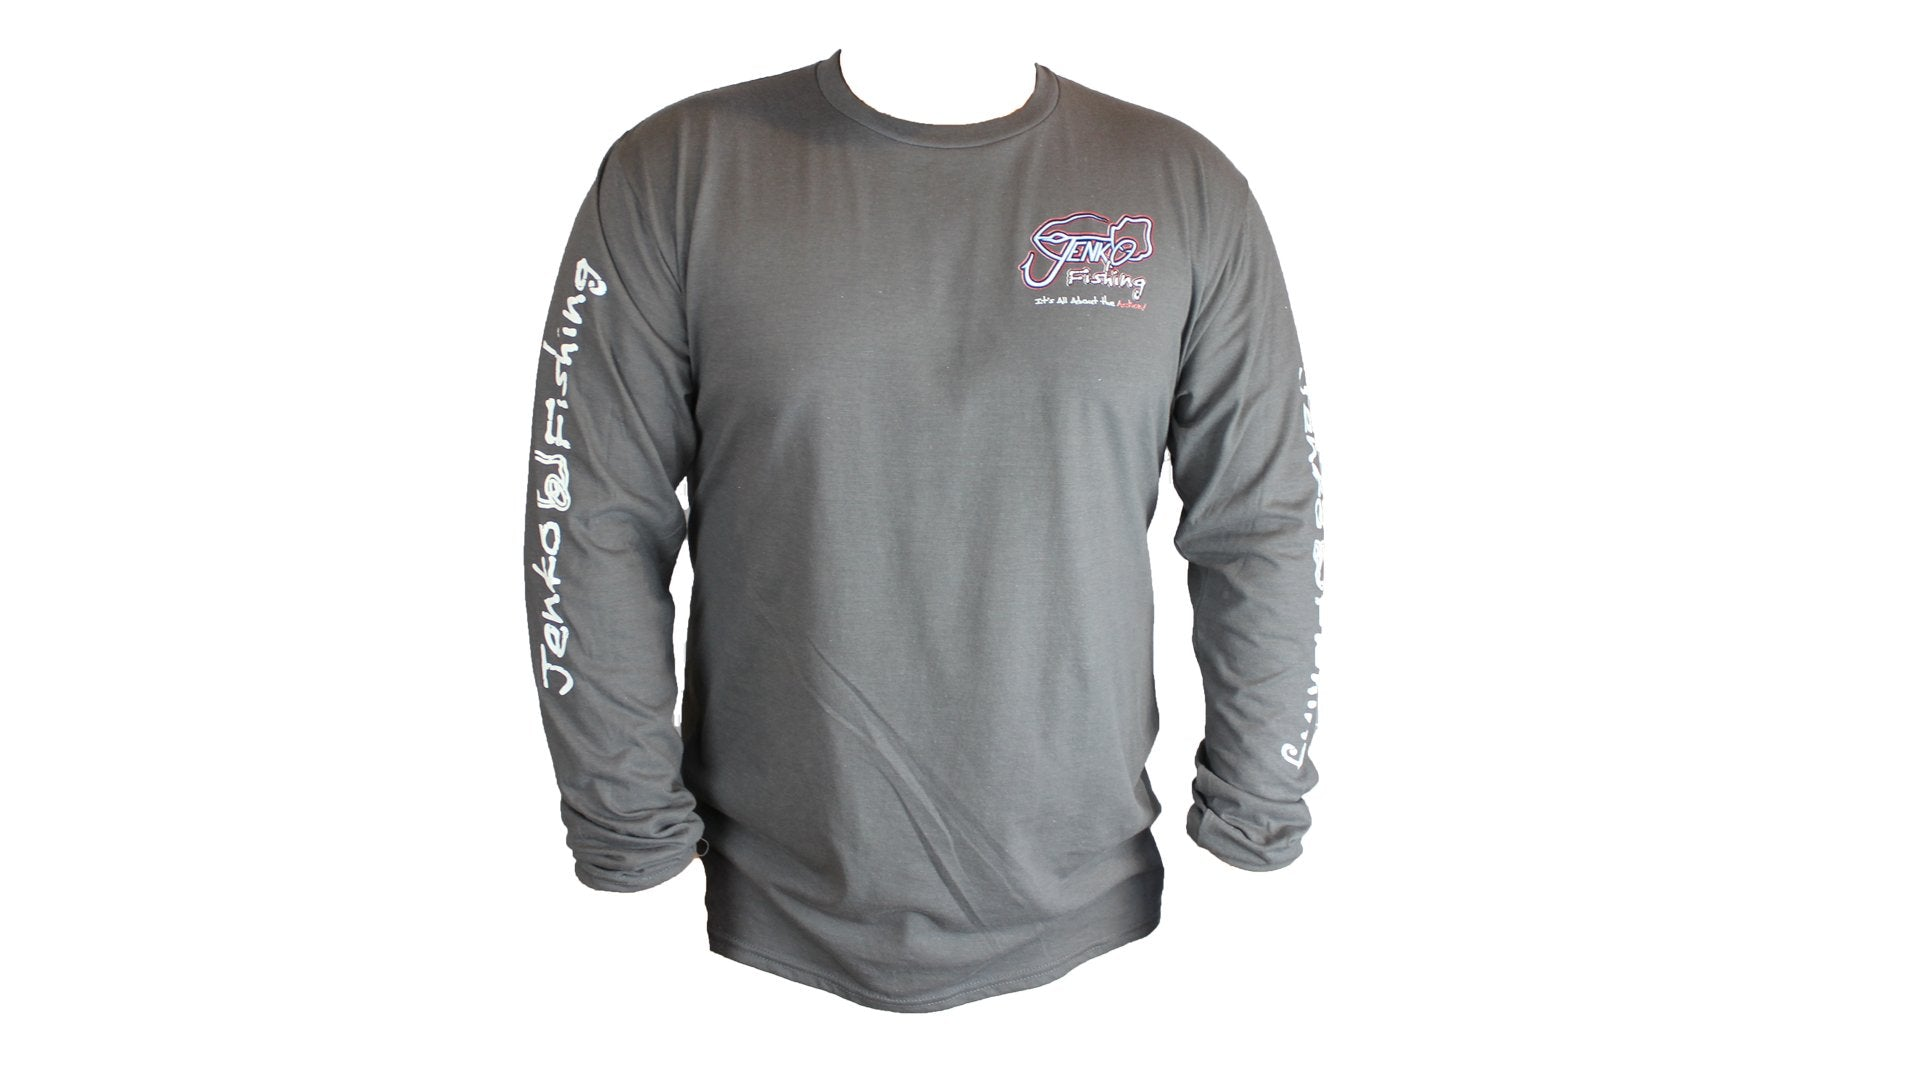 Big T Long Sleeve Charcoal Gray 50/50 T-Shirt